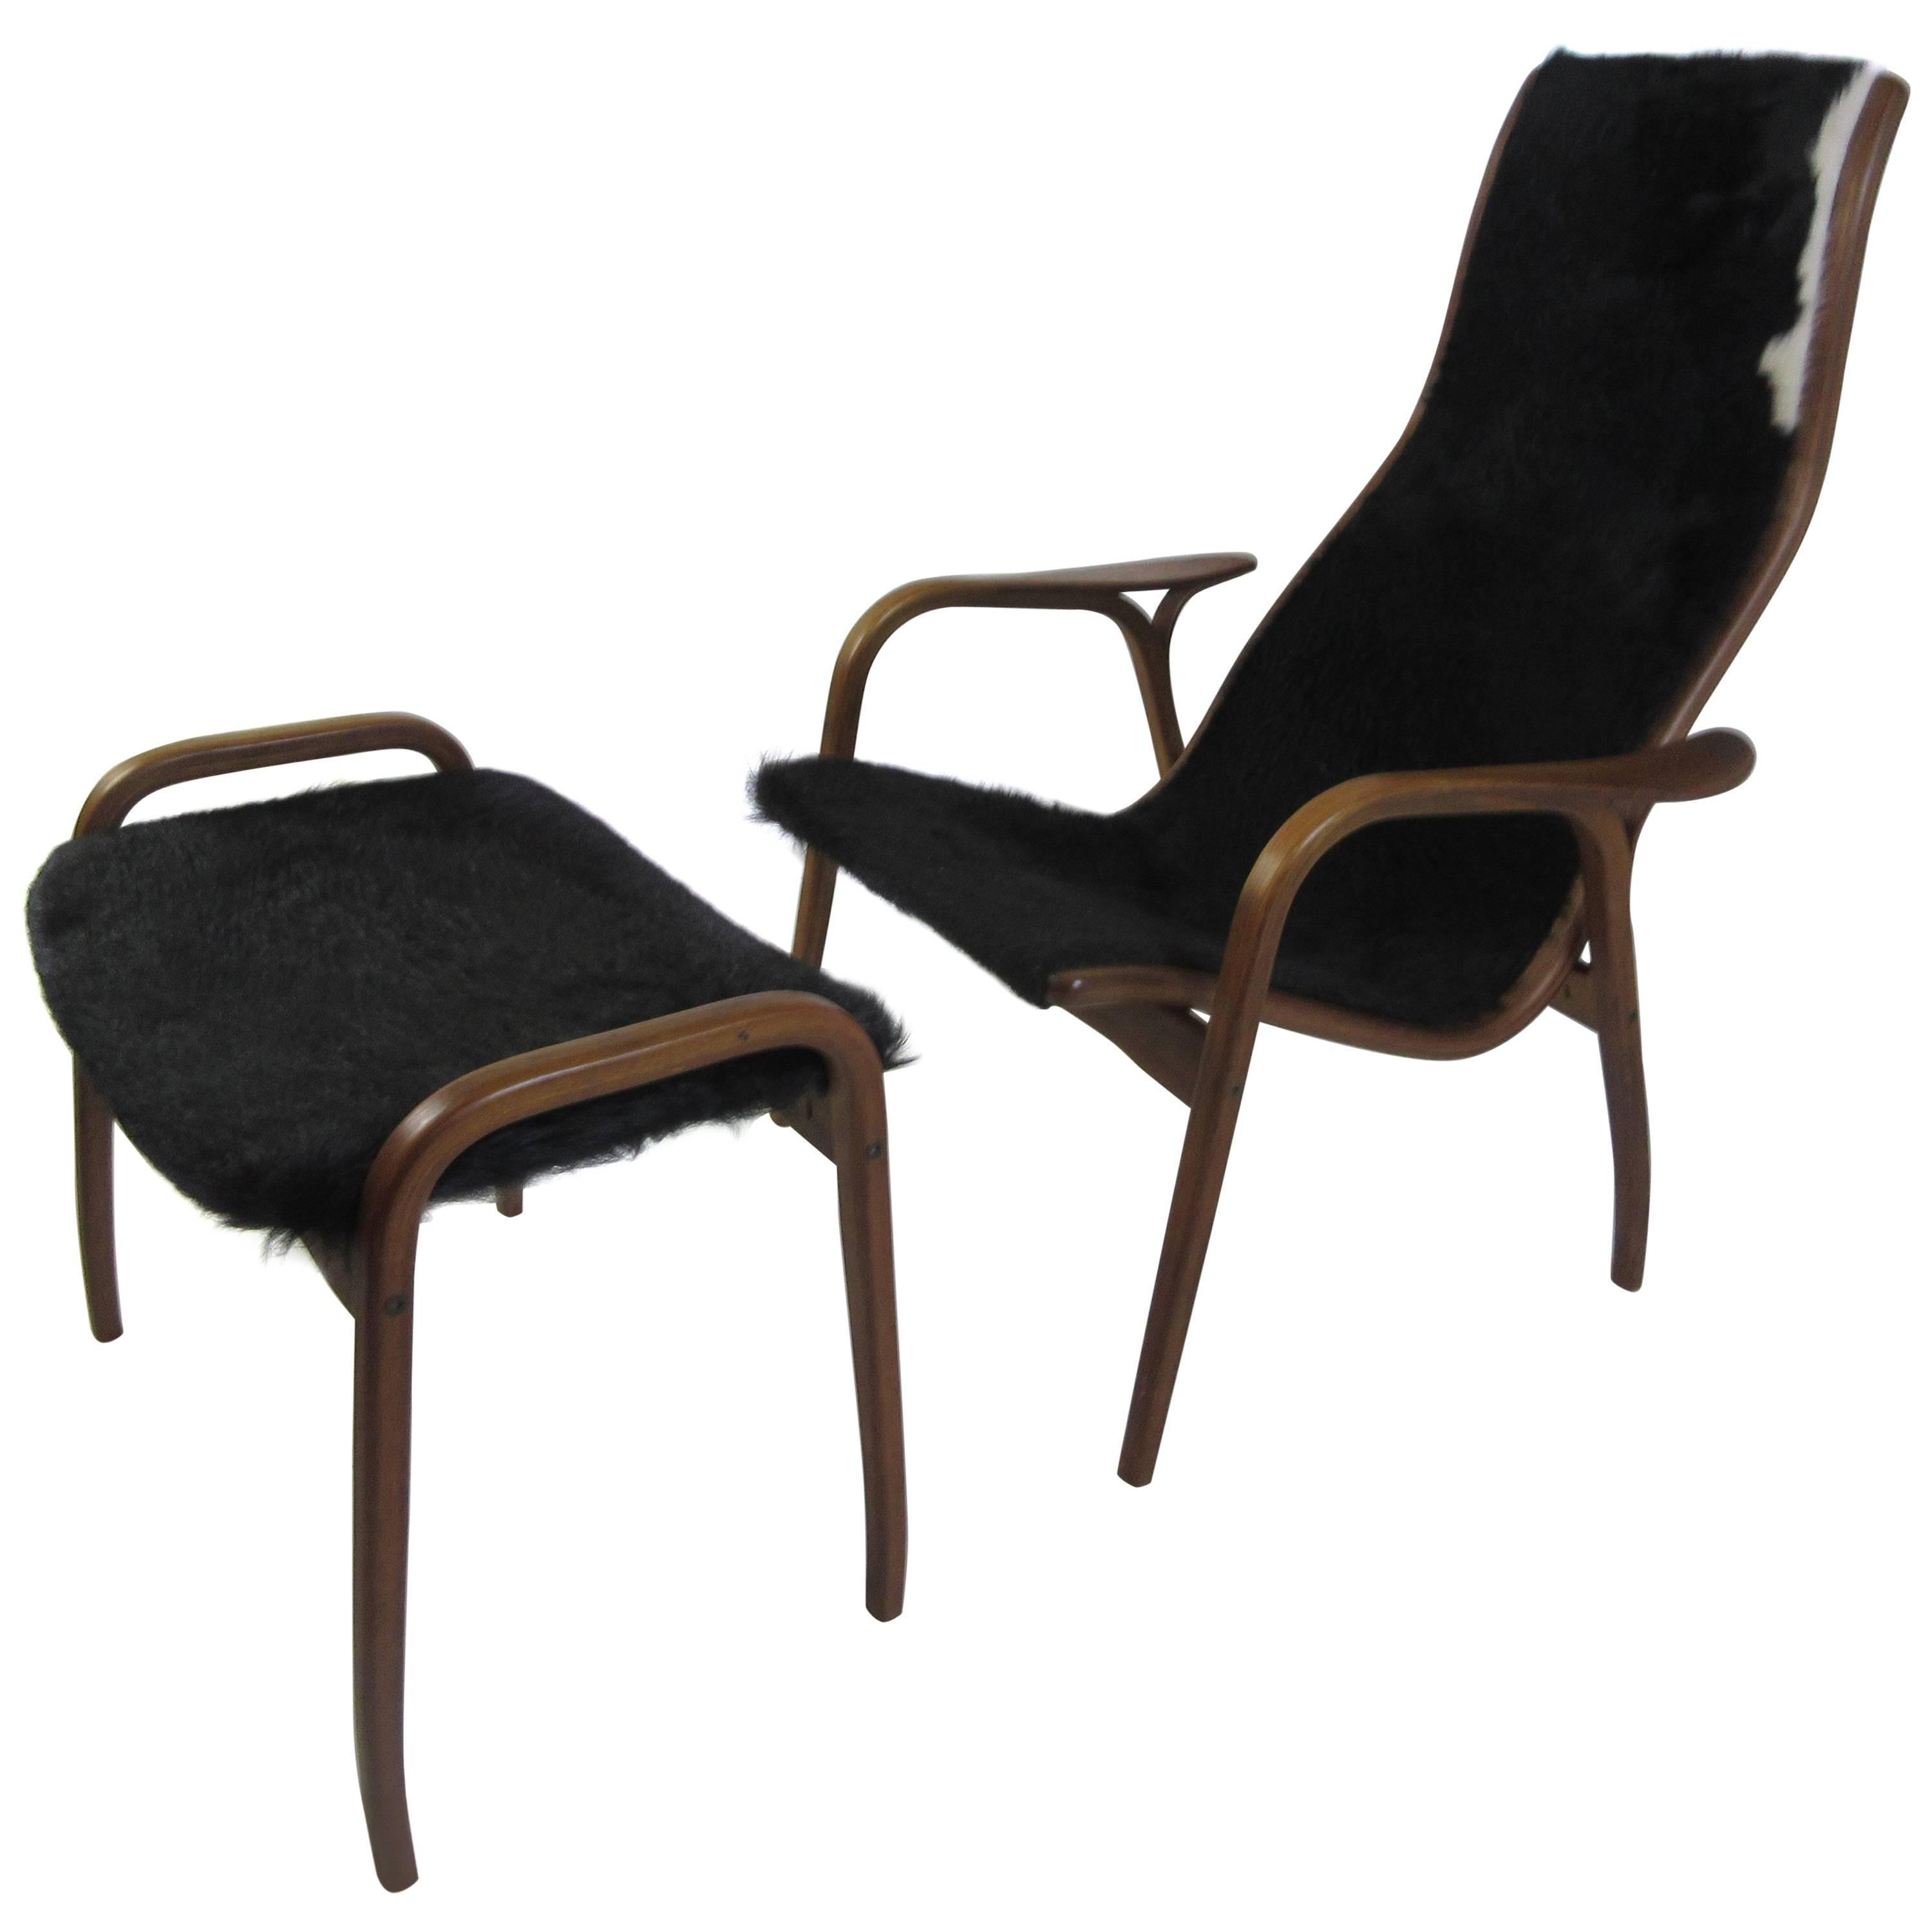 Yngve Ekstrom Lamino Chair And Ottoman By Swedese In Cow Hide 1